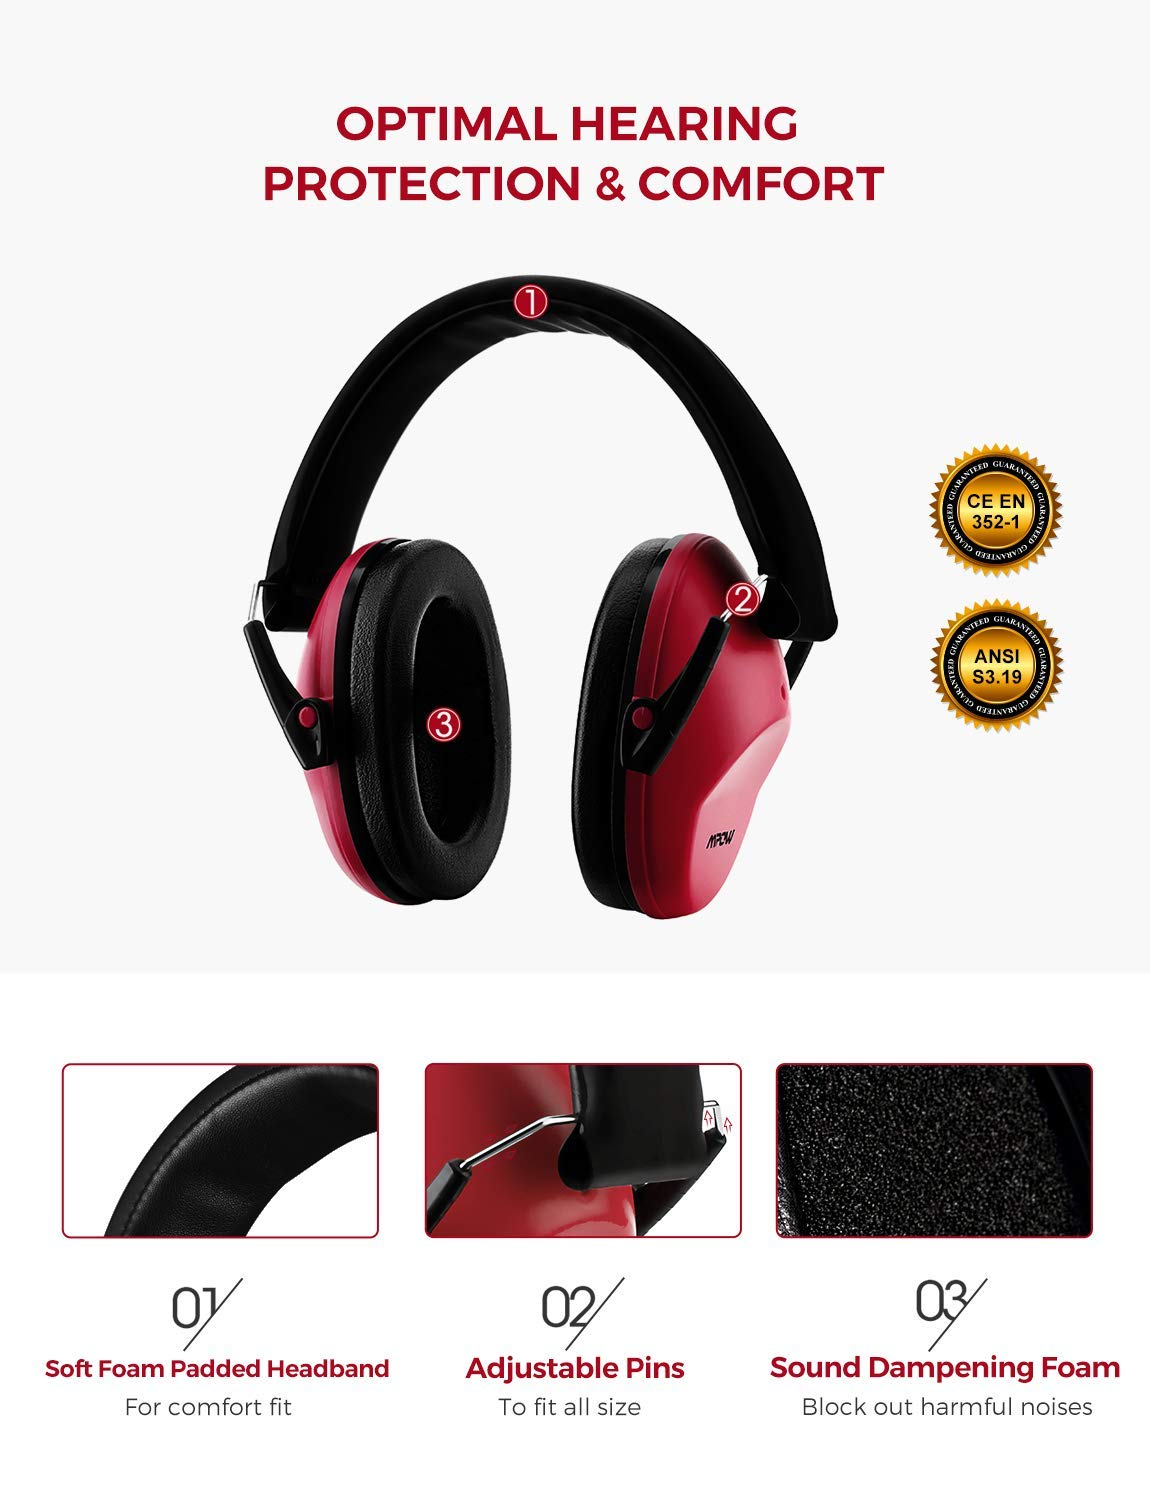 Mpow 068 Kids Ear Protection, NRR 25dB Noise Reduction Ear Muffs, Toddler Ear Protection, Protective Earmuffs for Shooting Range Hunting Season, for Toddlers Kids Children Teens by Mpow (Image #2)